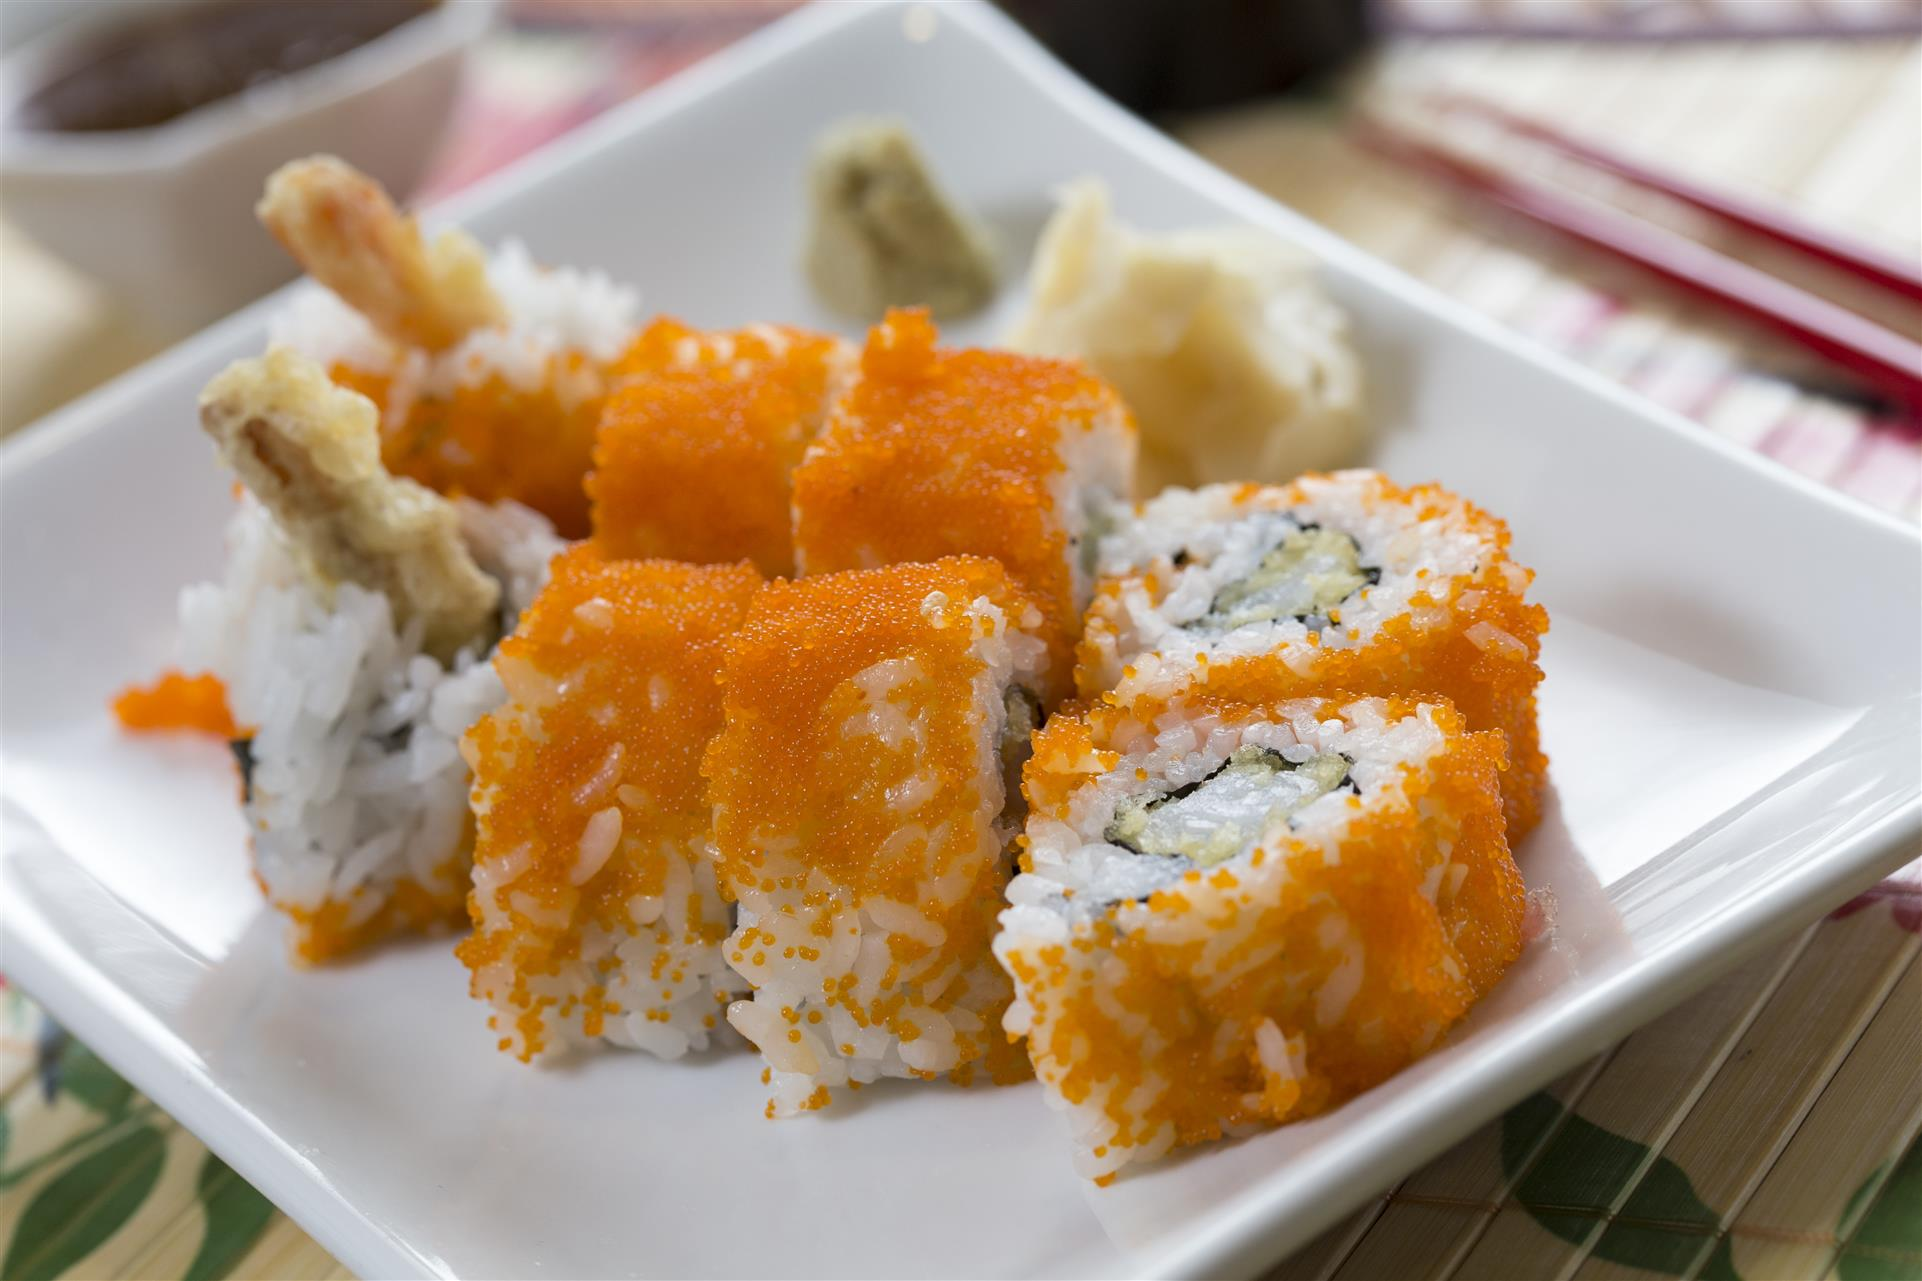 sushi roll with masago on the outside and a side of ginger